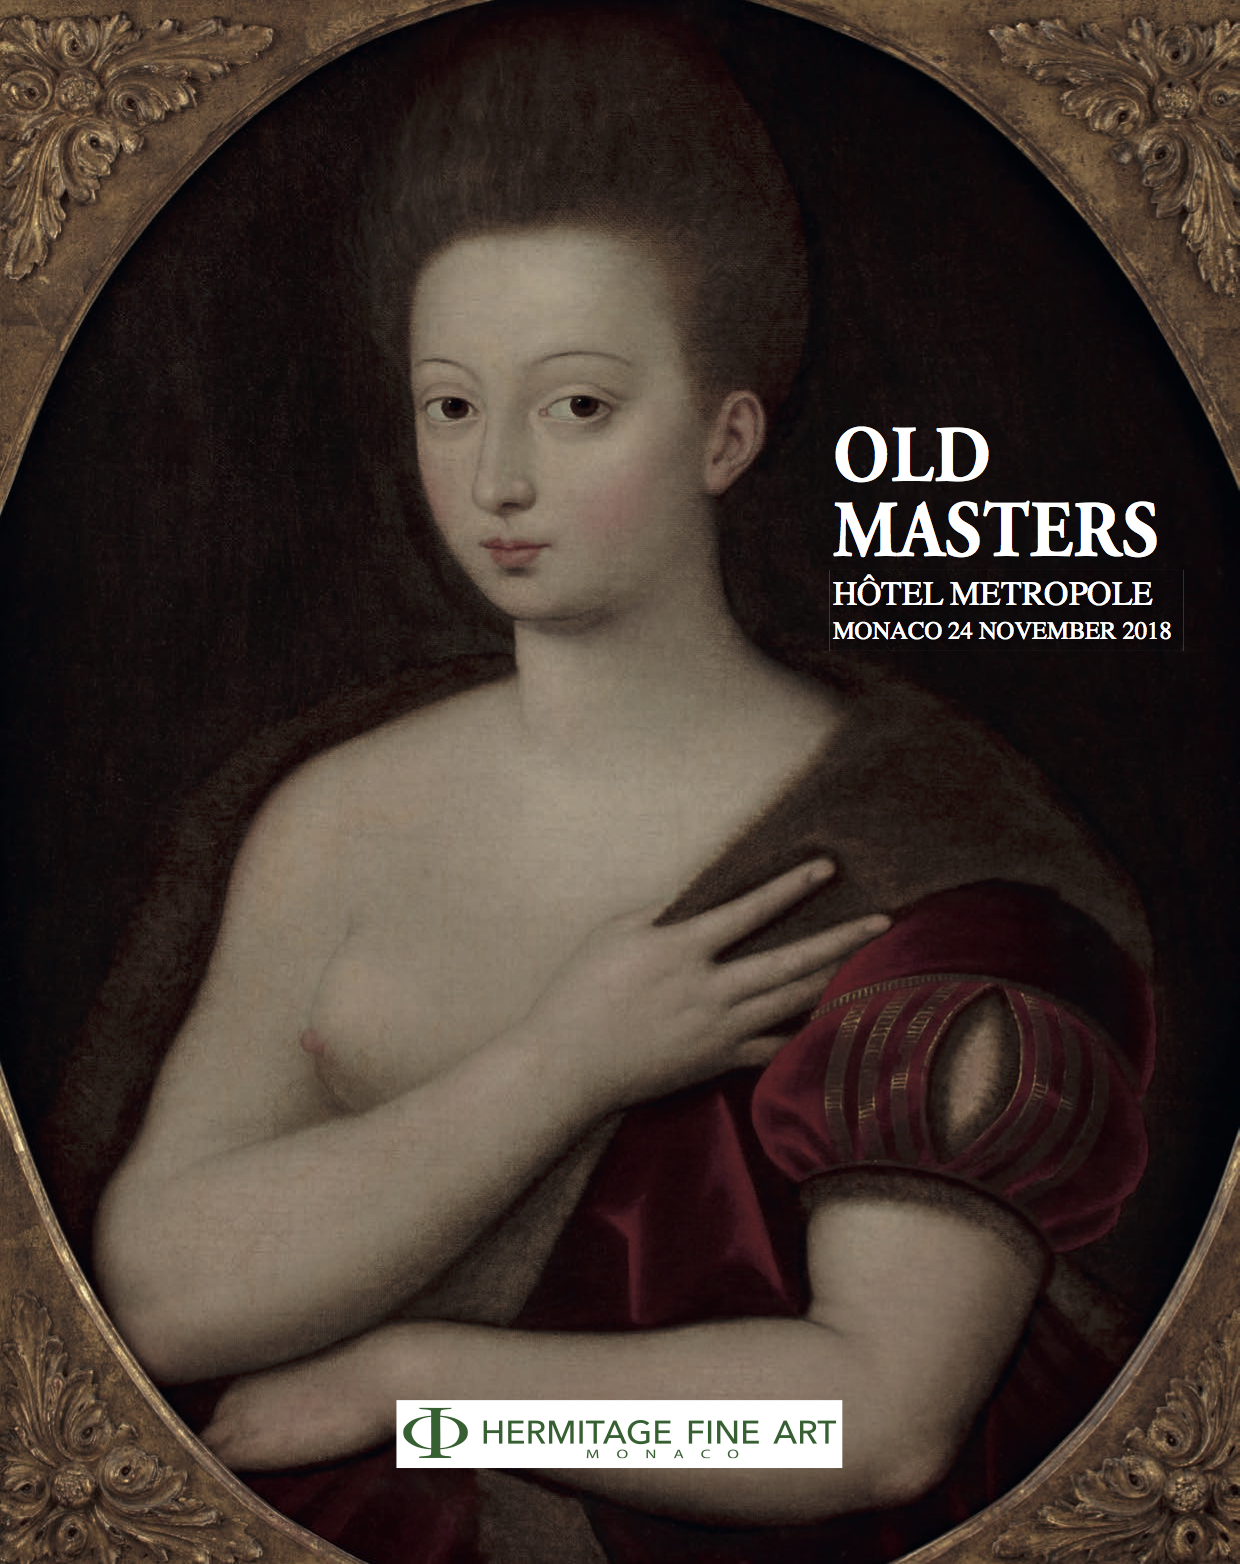 Vente Old Master Paintings chez Hermitage Fine Art : 39 lots